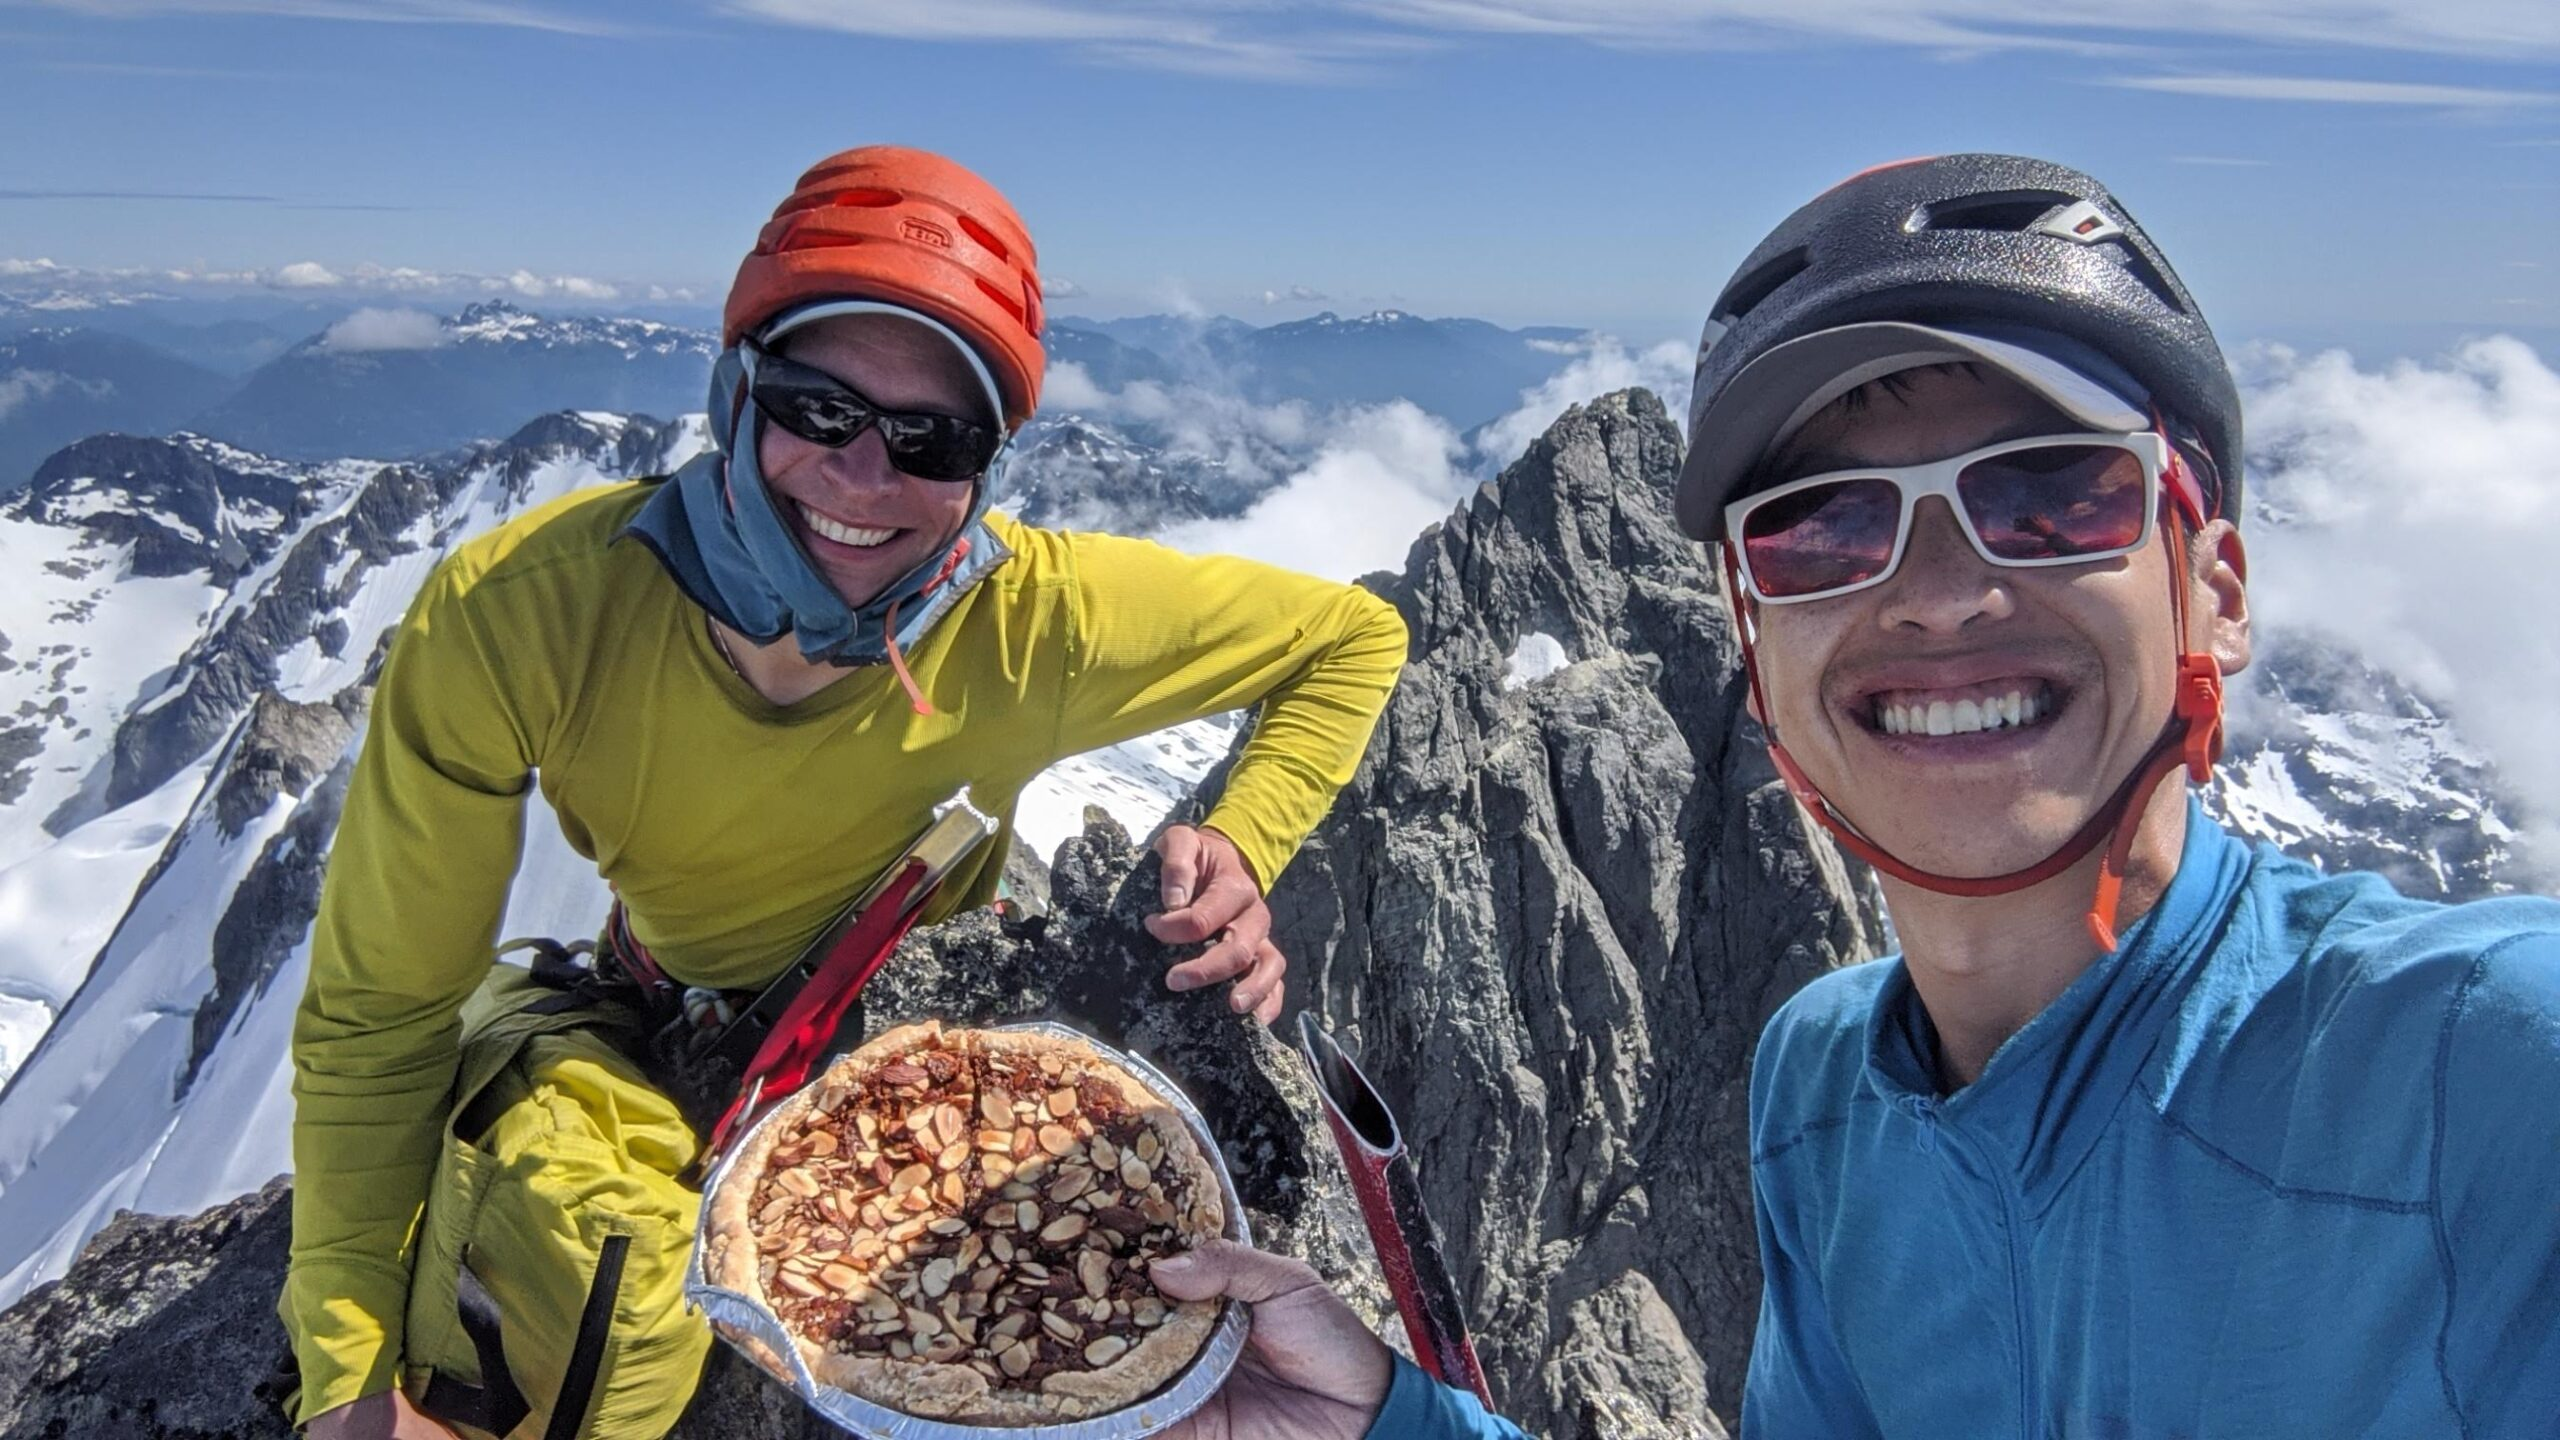 Fast and Light Al-pie-nism: A Traverse of the Tantalus Range